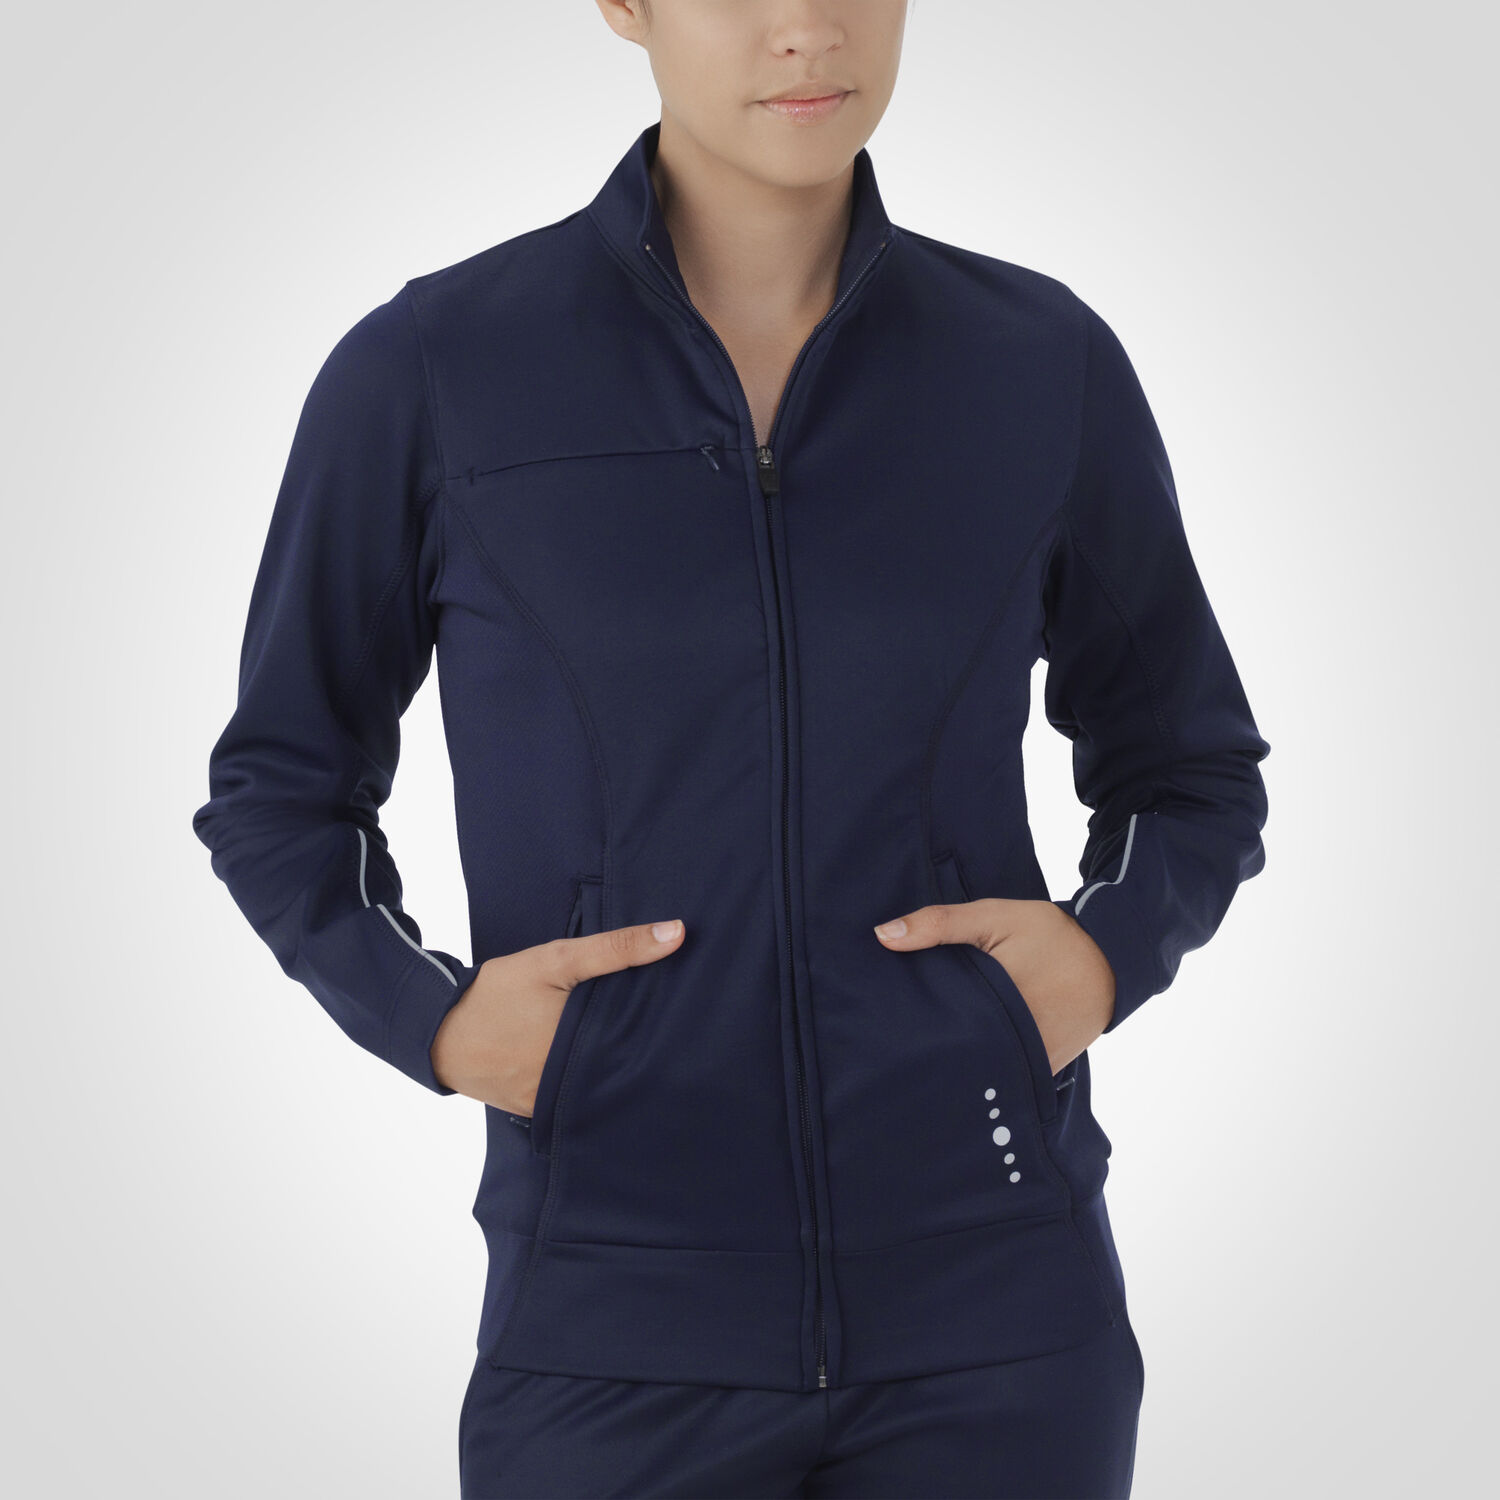 Athletic Jackets Womens